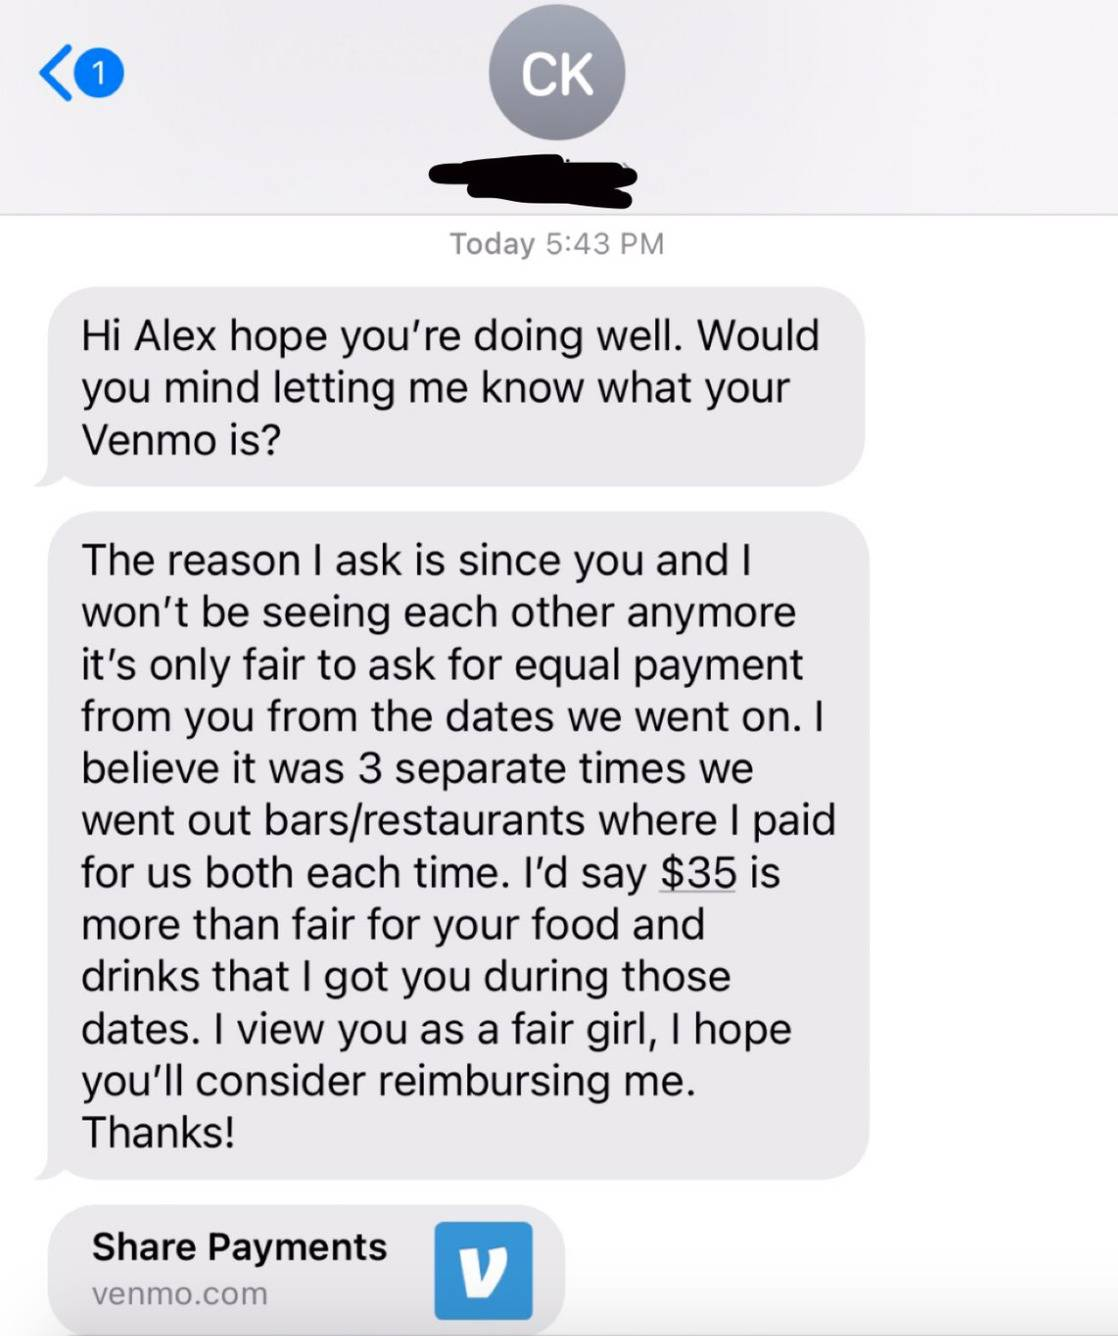 Text message: Hi Alex hope you're doing well. Would you mind letting me know what your Venmo is? The reason I ask is since you and I won't be seeing each other anymore it's only fair to ask for equal payment from you from the dates we went on. I believe it was three separate times we went out to bars / restaurants where I paid for us both each time. I'd say $35 is more than fair for your food and drinks that I got you during those dates. I view you as a fair girl, I hope you'll consider reimbursing me. Thanks!